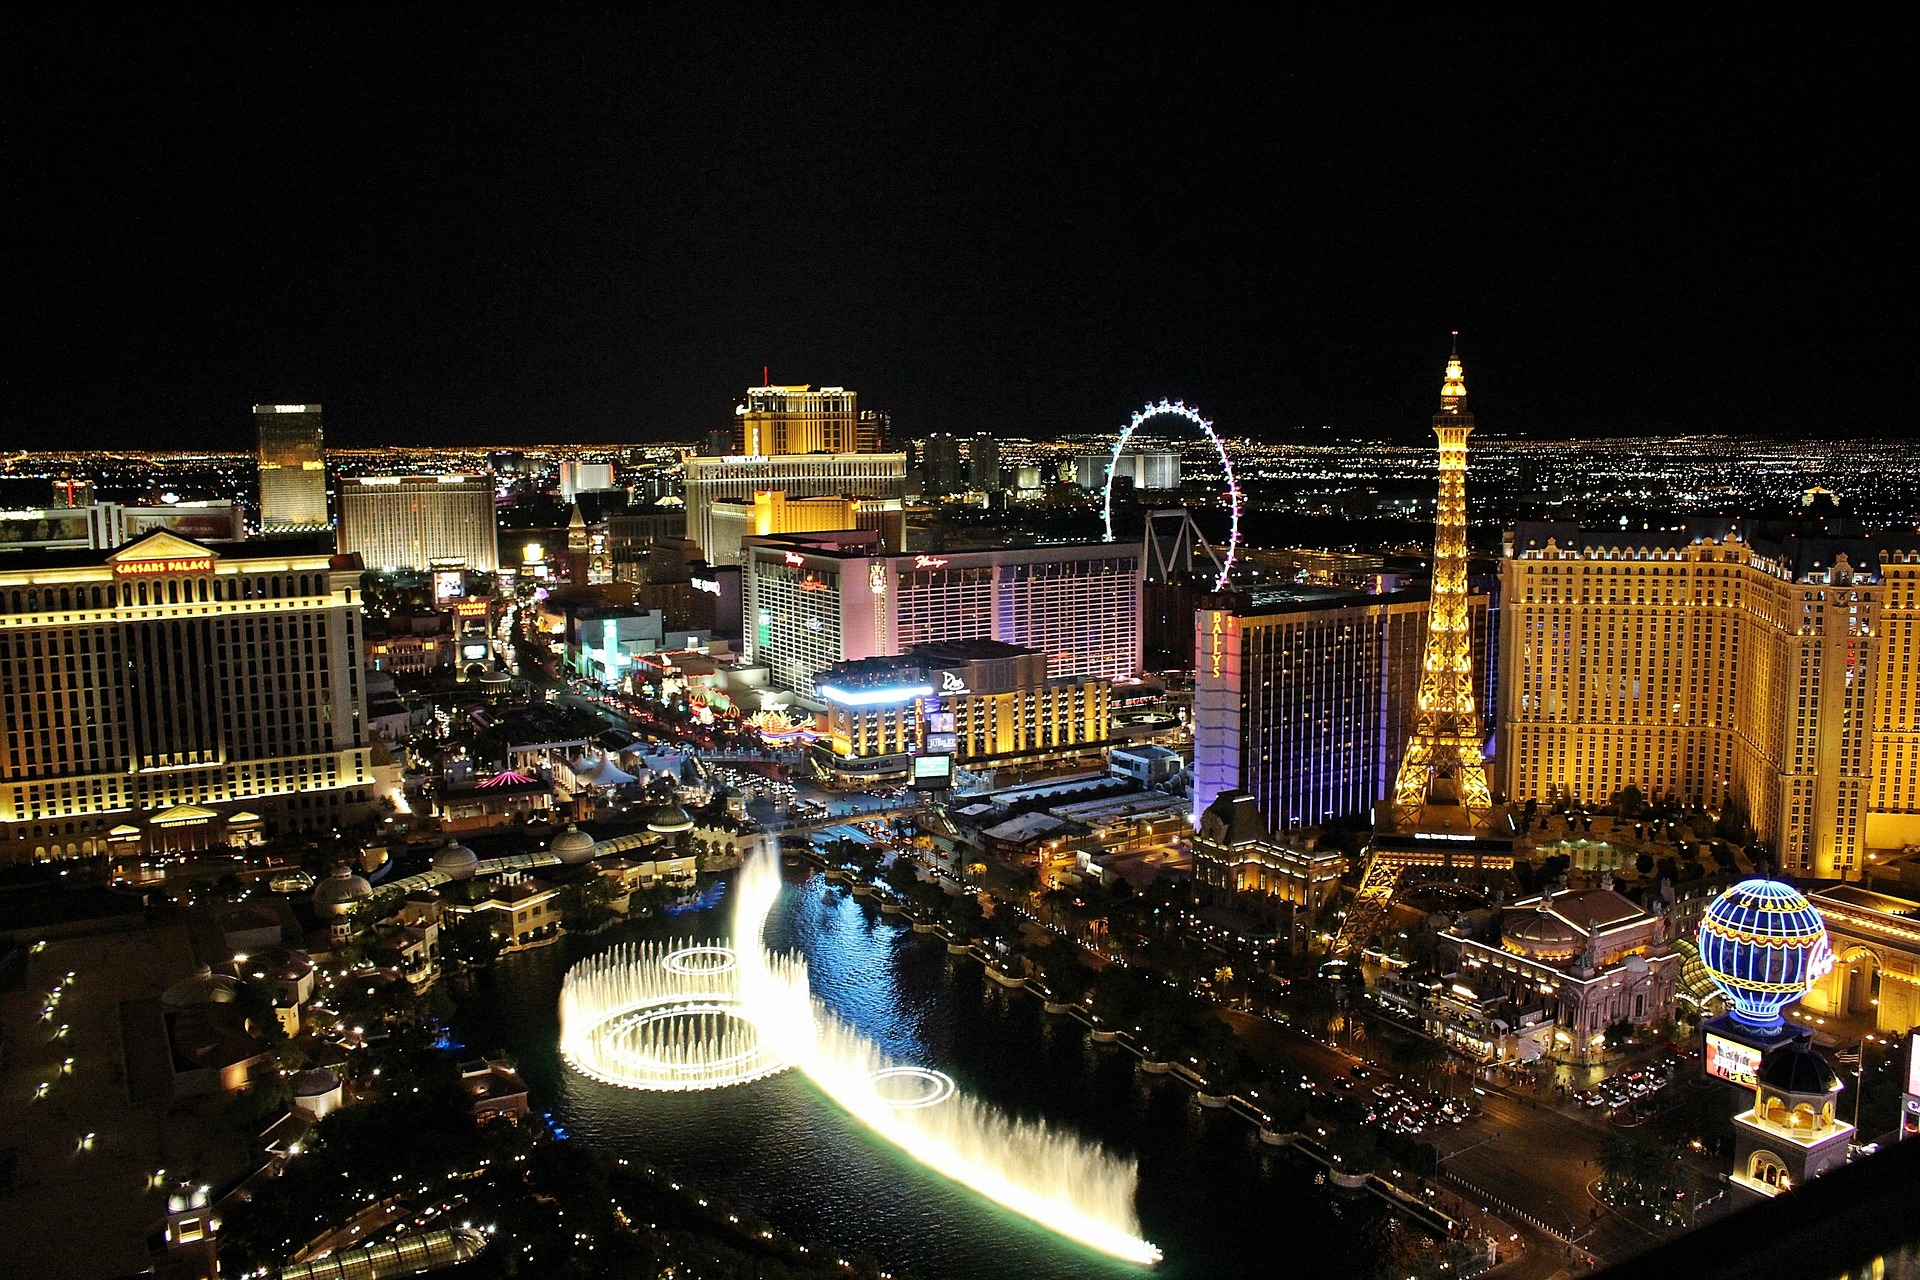 Image of the Las Vegas strip at night with hotels and lights - TAB Bank